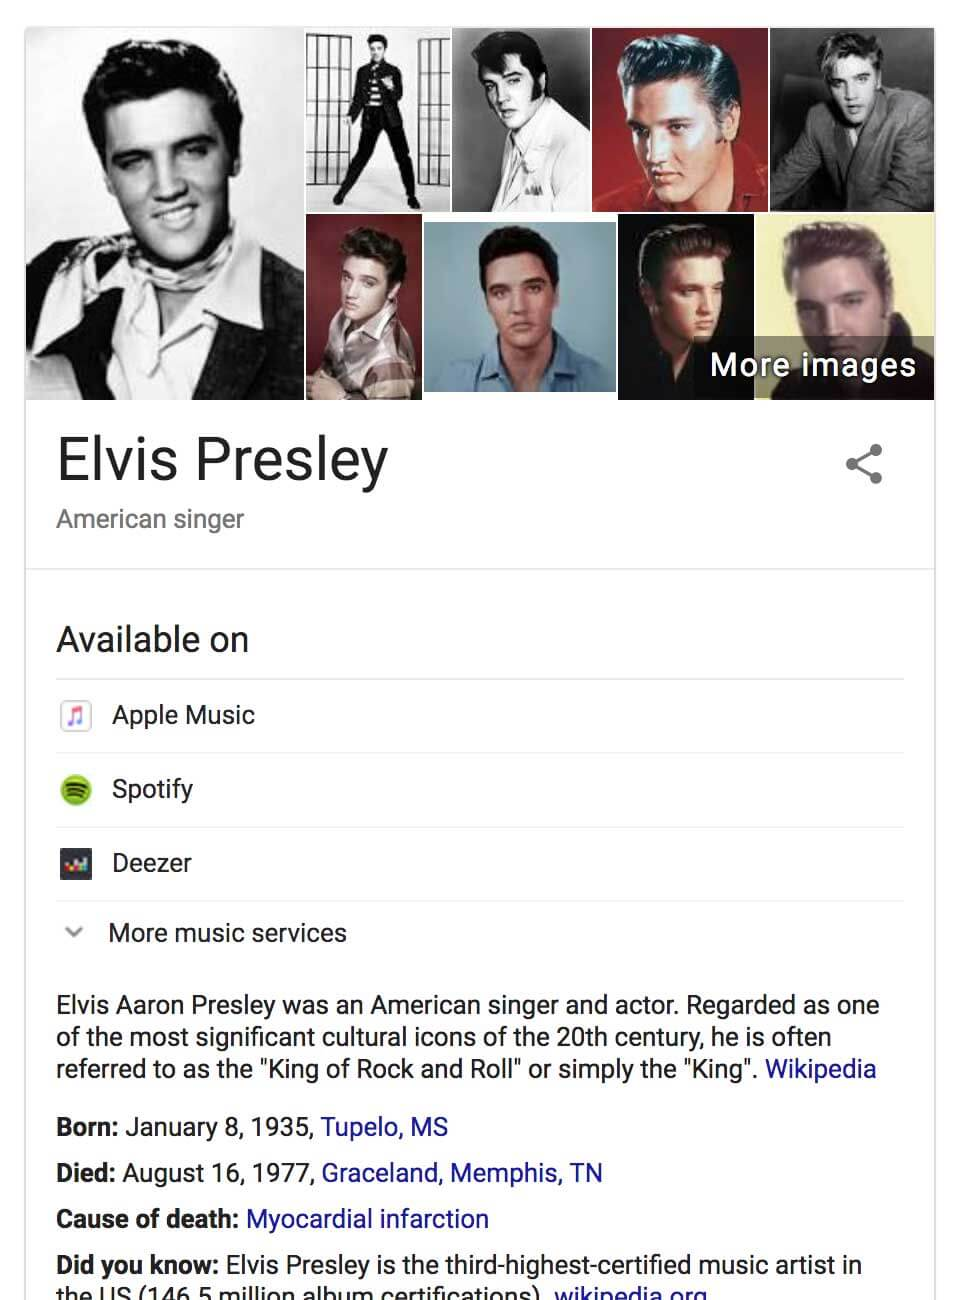 Google Knowledge Graph Info Box